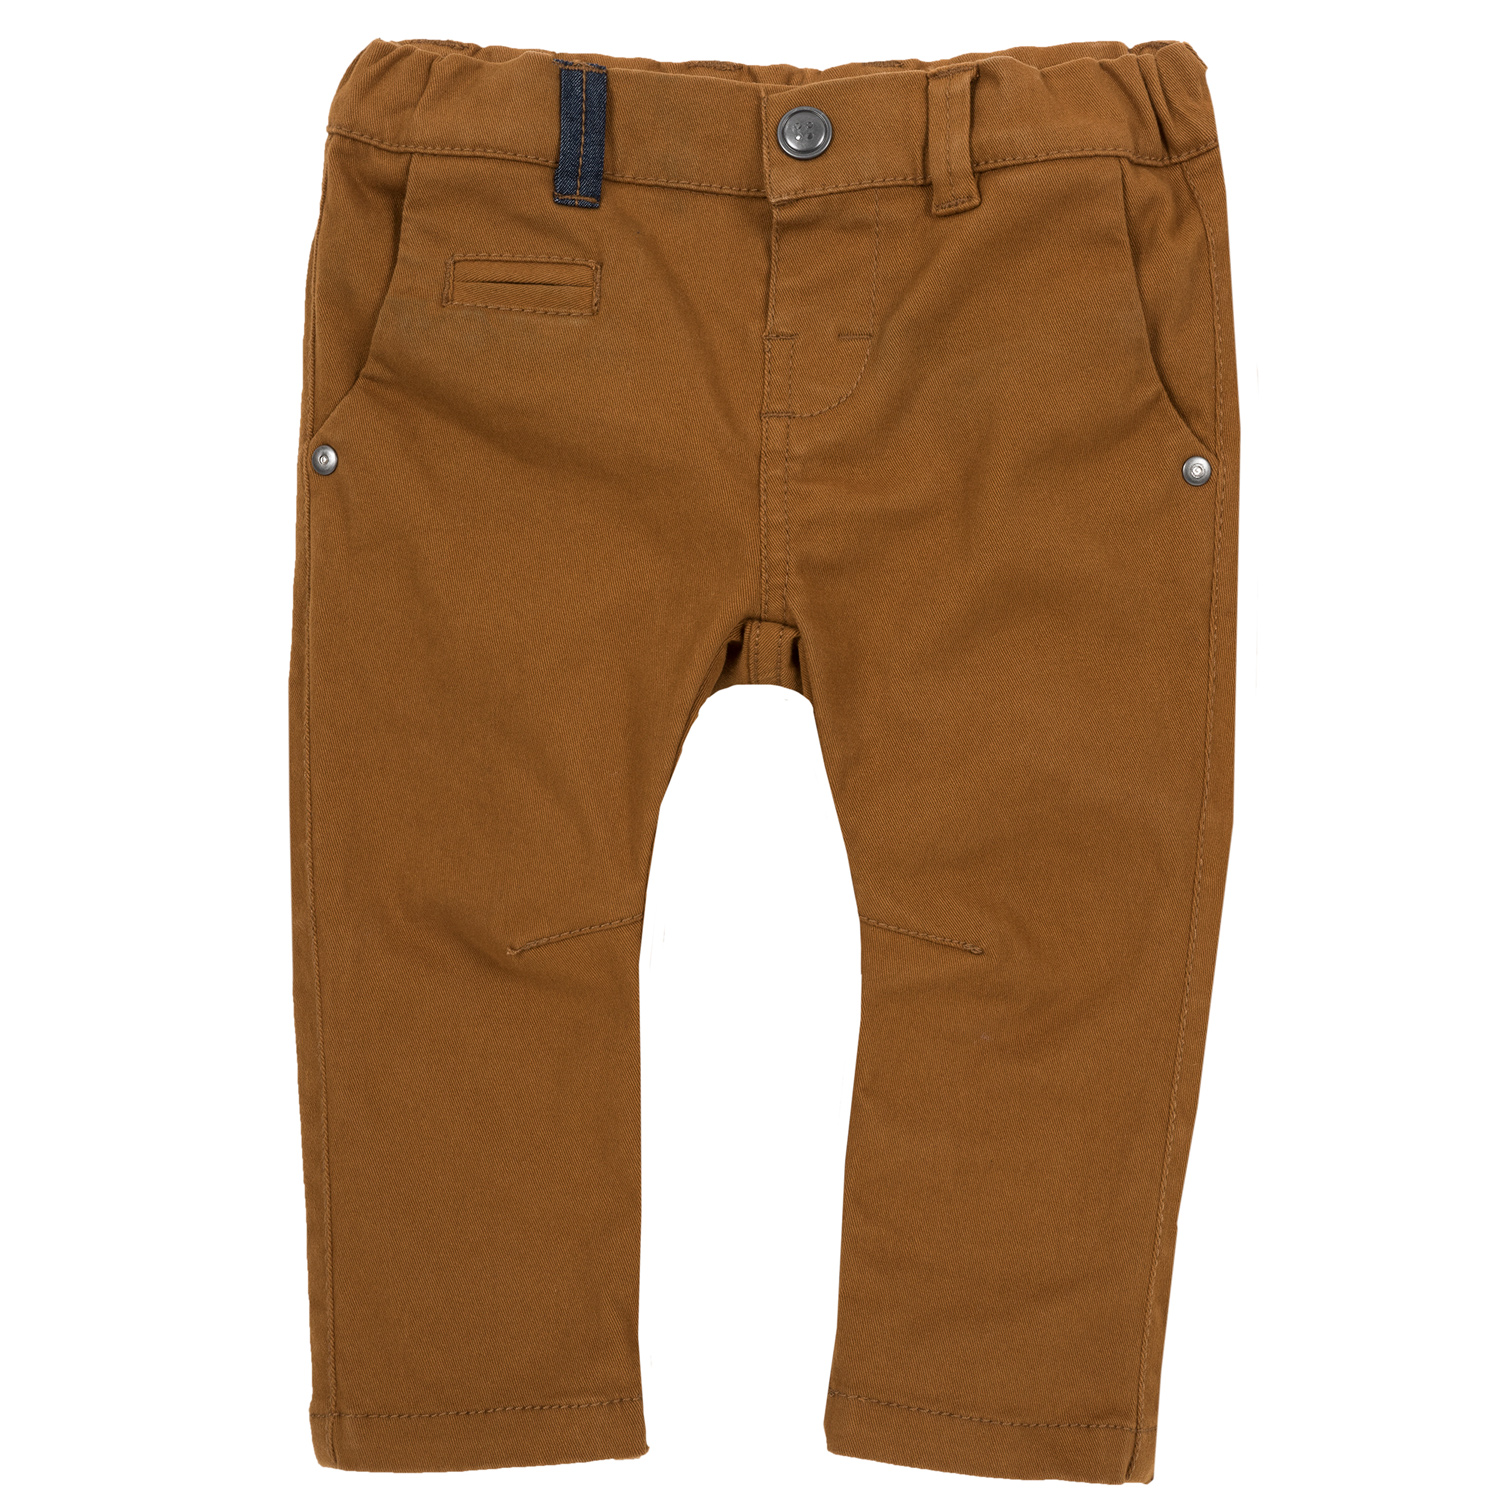 Pantalon copii Chicco, maro